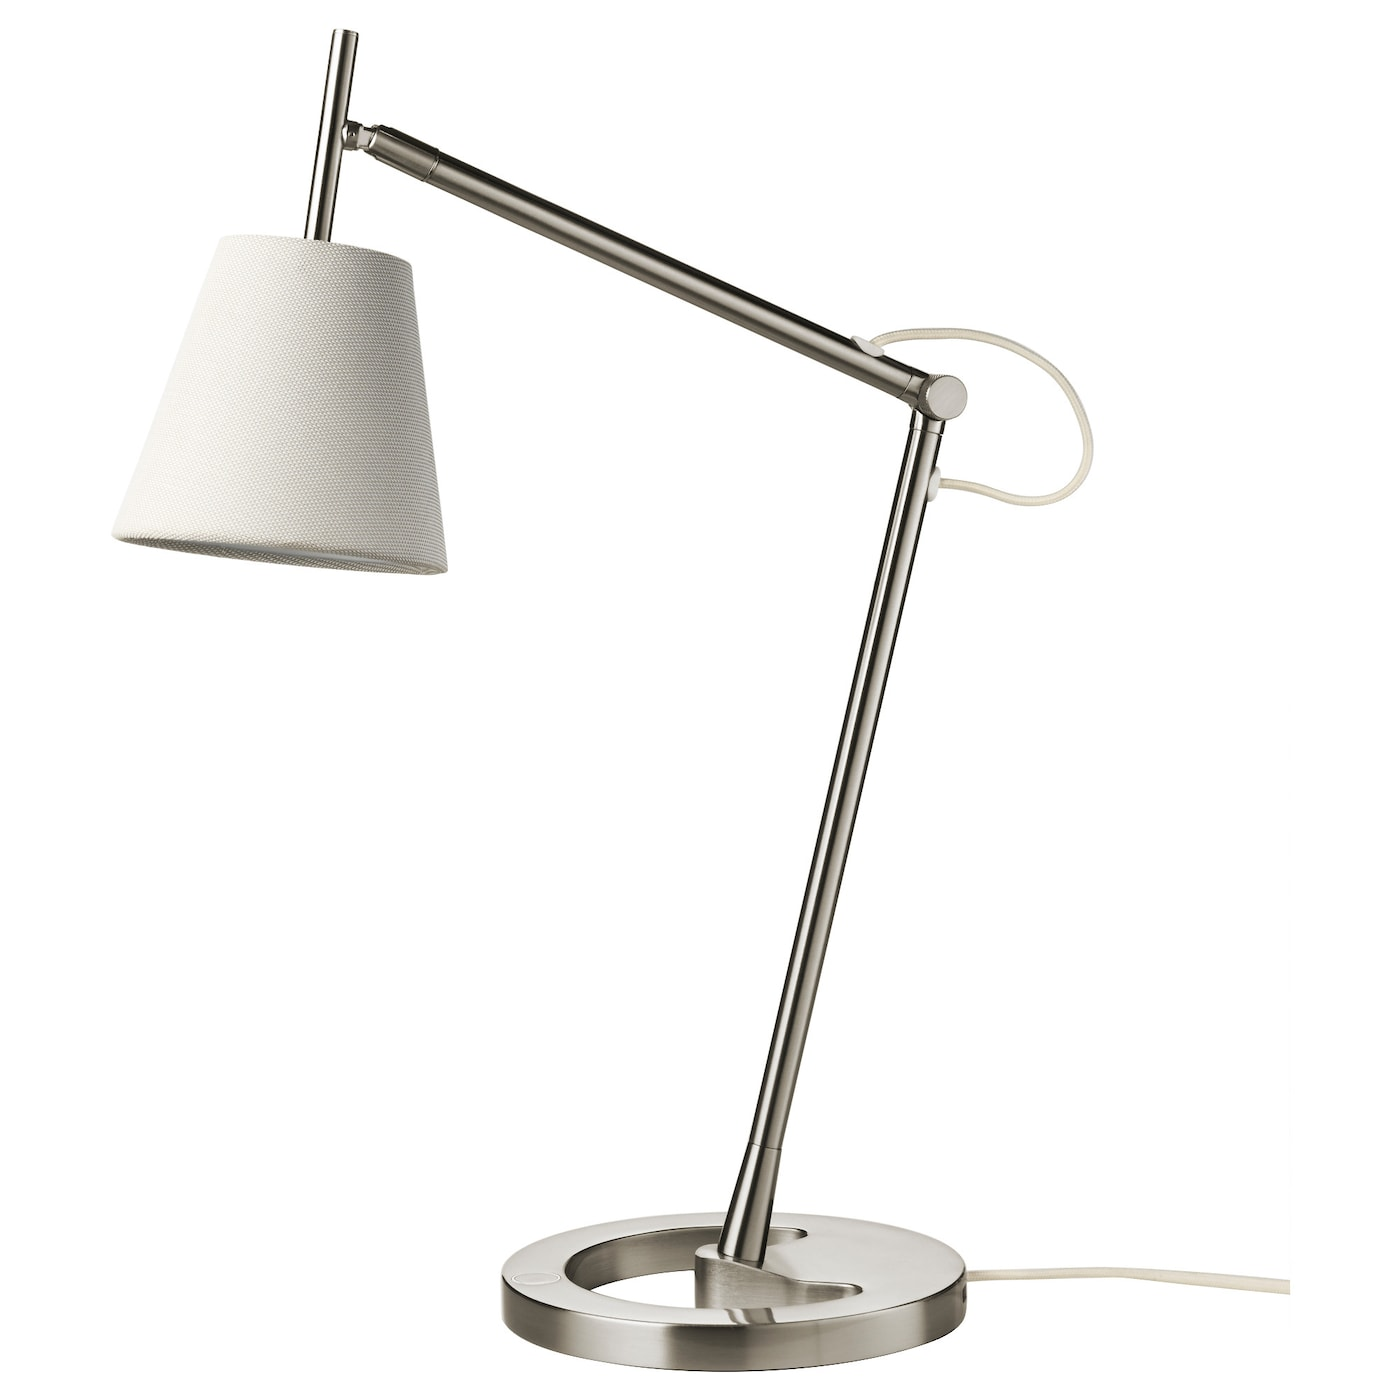 Ikea Work Lamps Led Desk Lamps Amp Clamp Spotlights